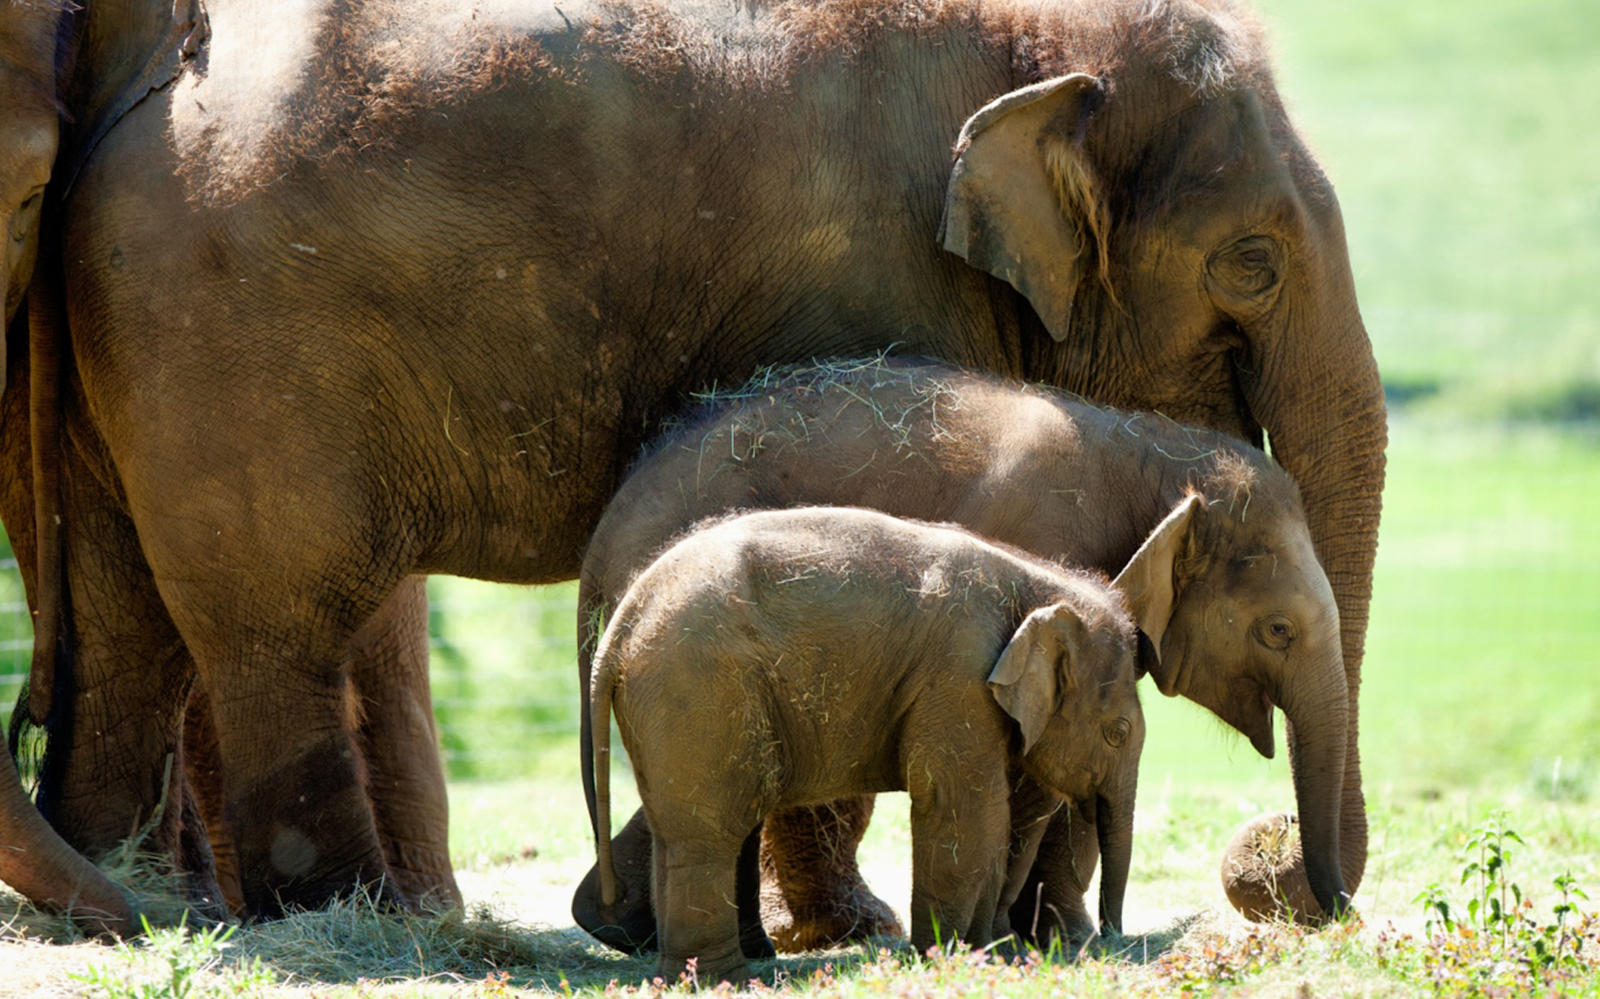 5da176f2 cd36 4a61 ad15 407dbabe0f9d 2830 london zsl london zoo  admission tickets 03